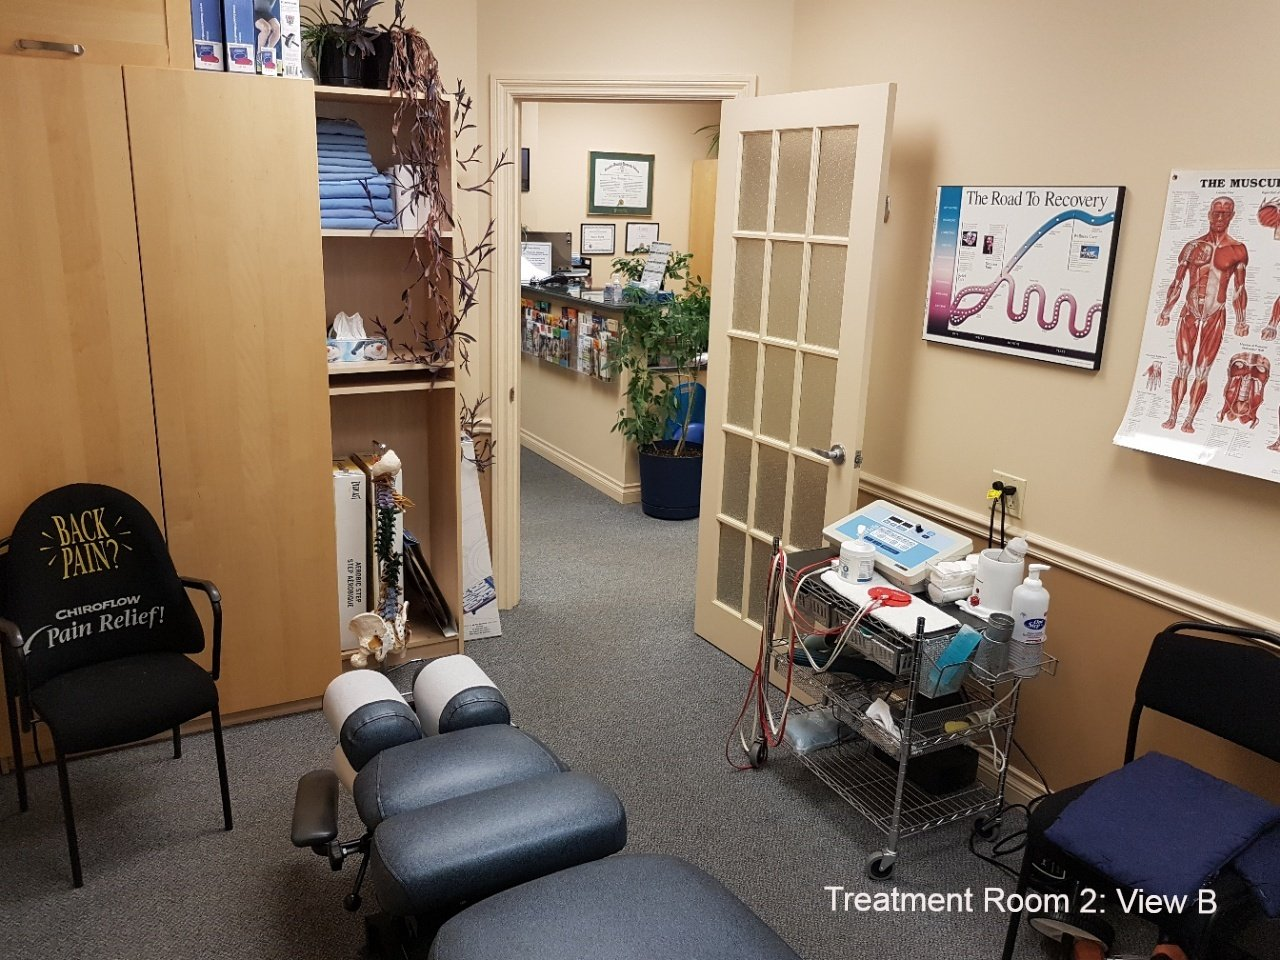 Treatment Room: View 2b